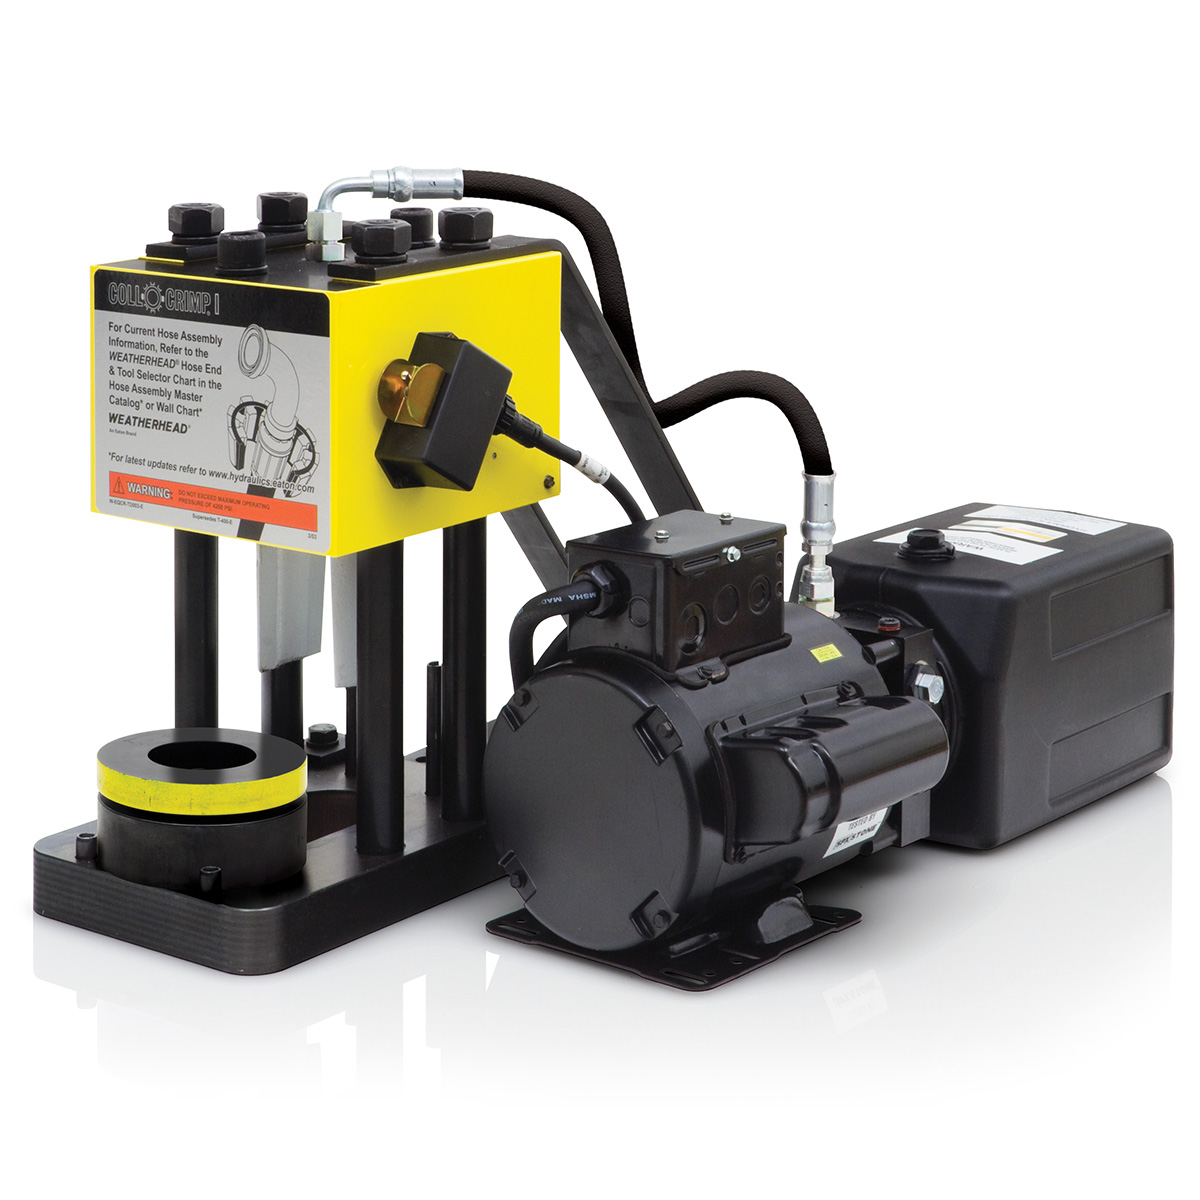 T-401 Coll-O-Crimp I Press with 110V Electric Pump & Tooling Package